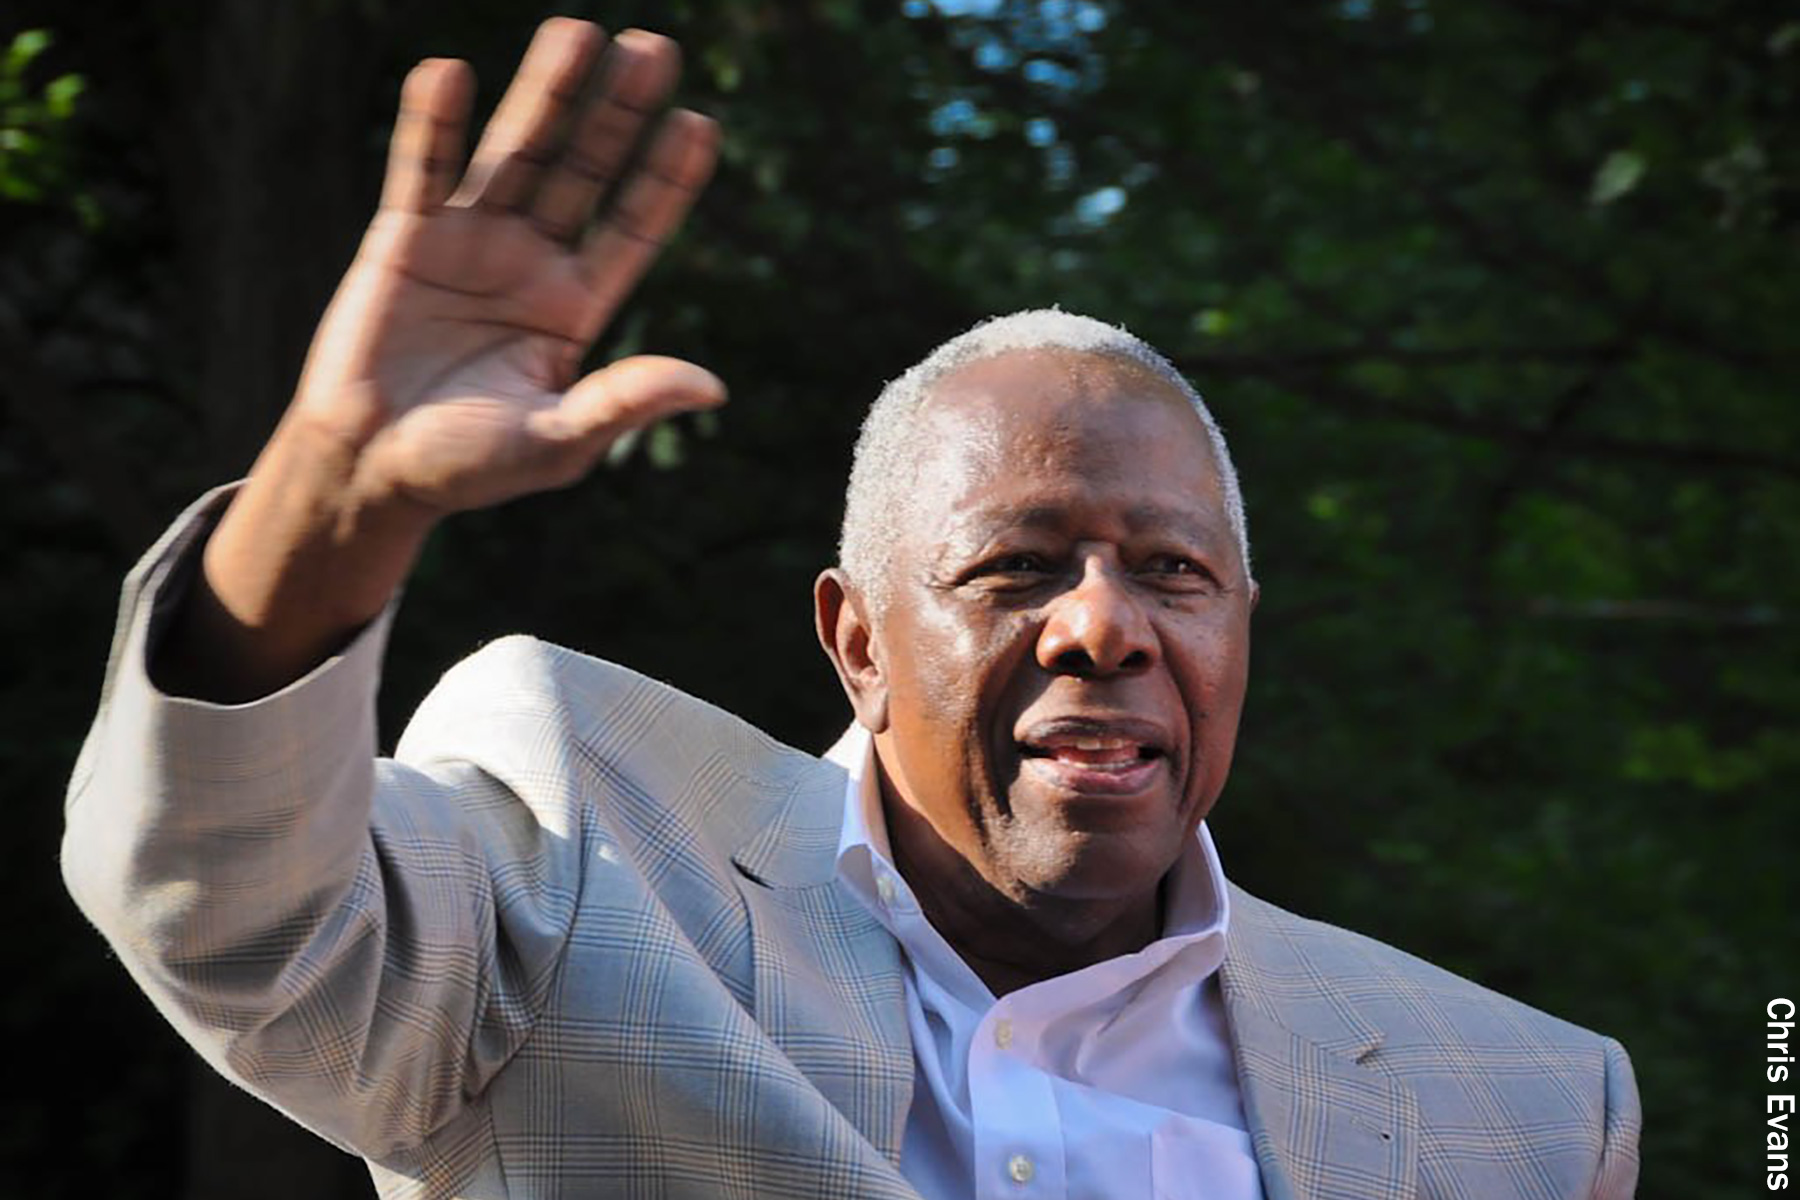 Baseball Great Hank Aaron Dies at 86